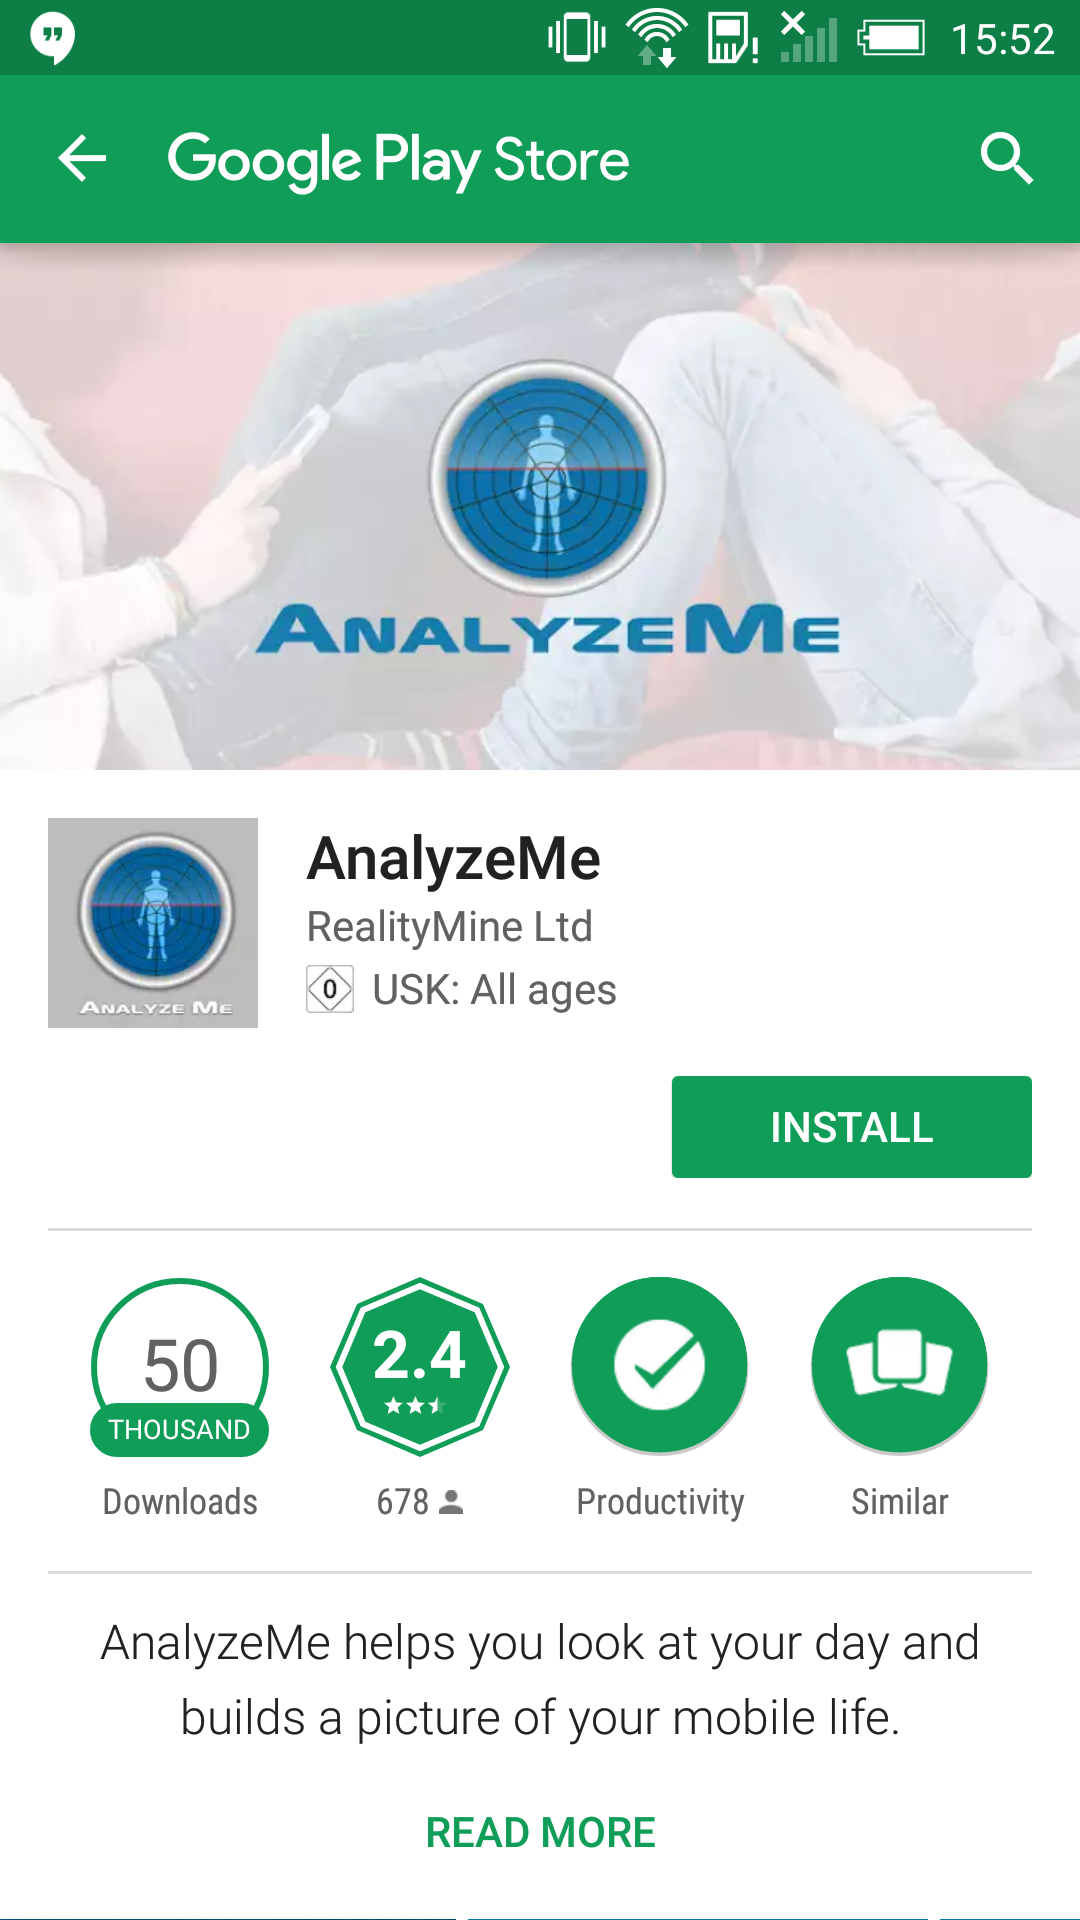 1. Click the link you were provided by email that will take you to the Google  Play Store page for the Analyze Me App. Click 'Install' to get started.